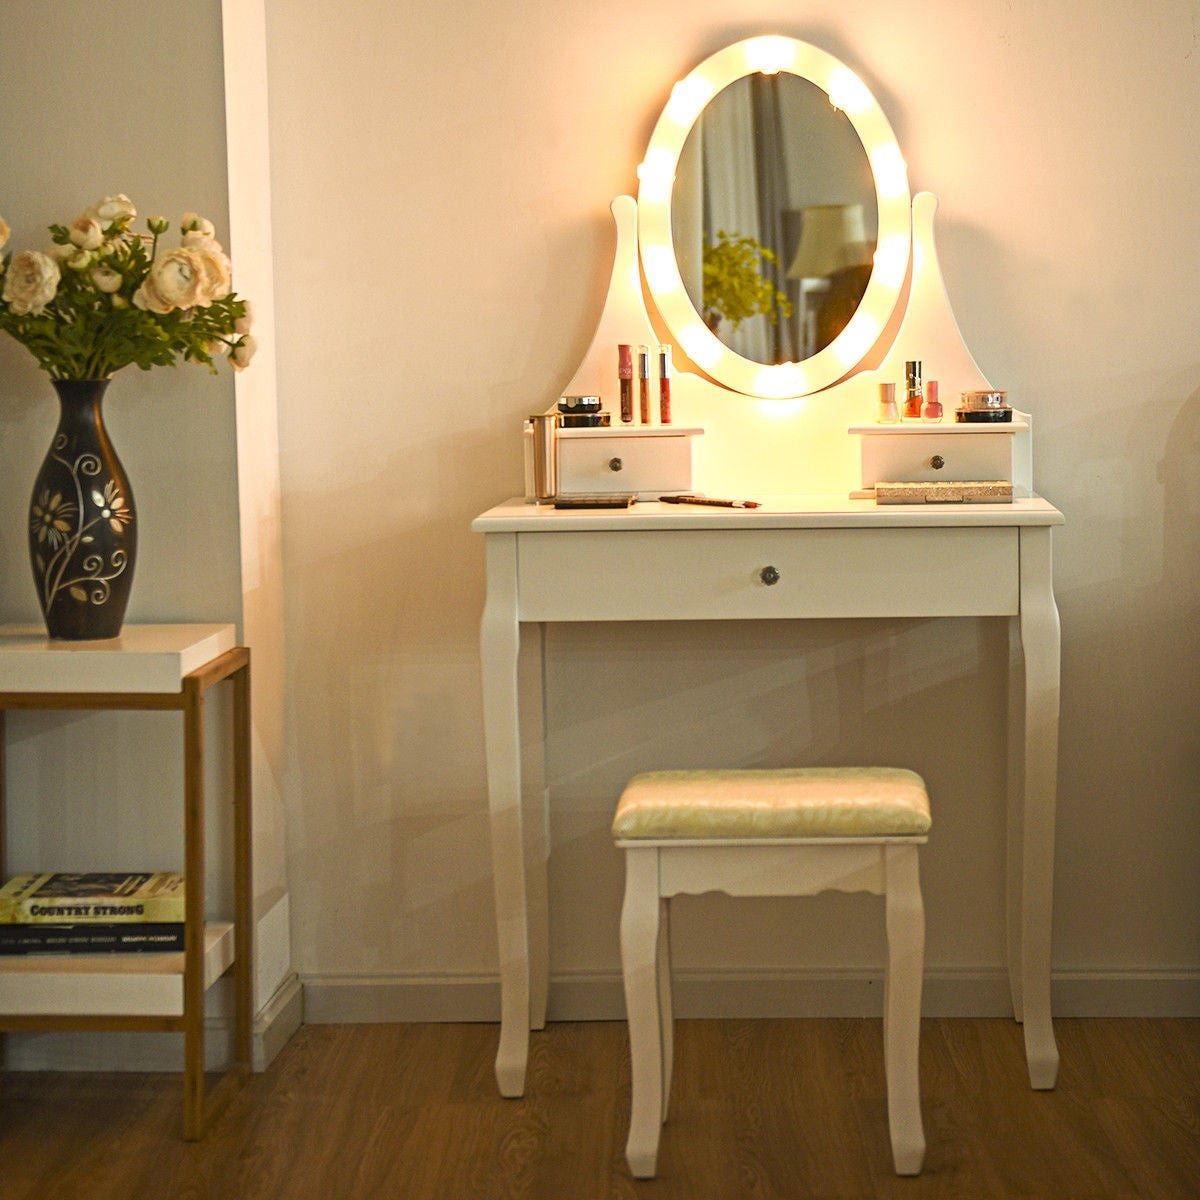 Gymax 3 Drawers Vanity Makeup Dressing Table Stool Set Lighted Mirror On Sale Overstock 25199029